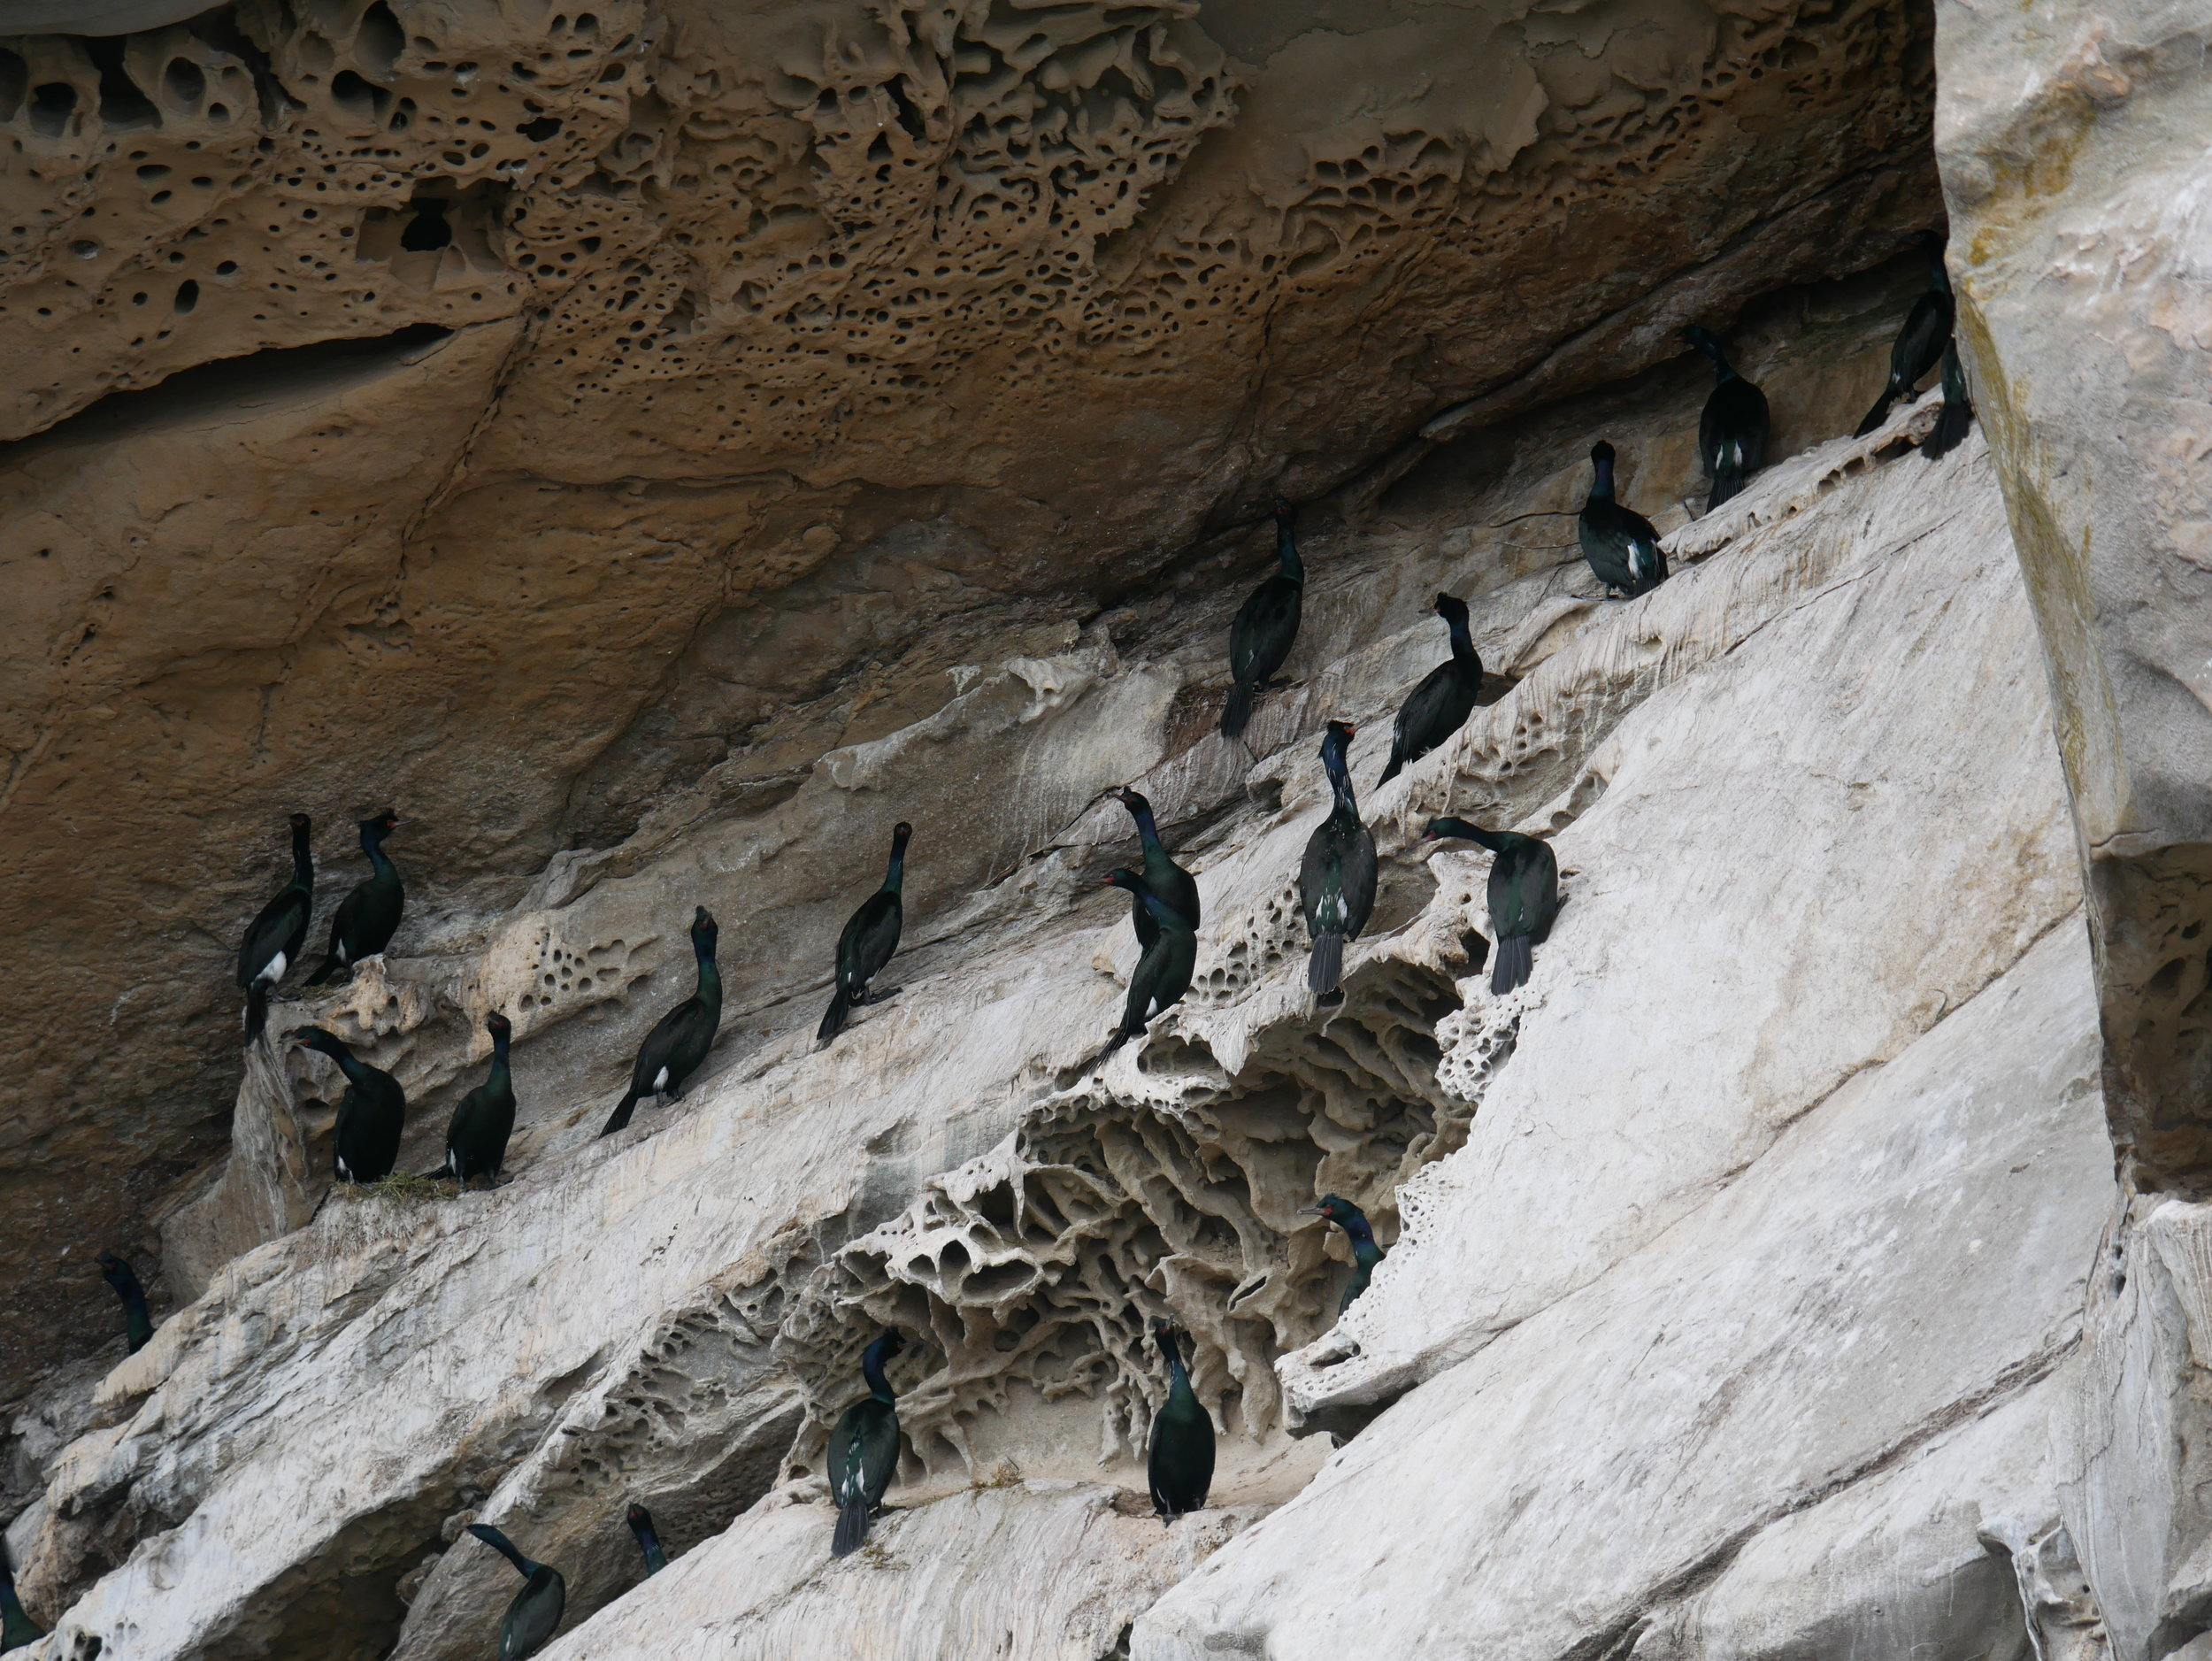 A nesting colony of cormorants at the Gabriola bluffs. These seabirds lay their eggs in the rock crevices! Photo by Rodrigo Menezes